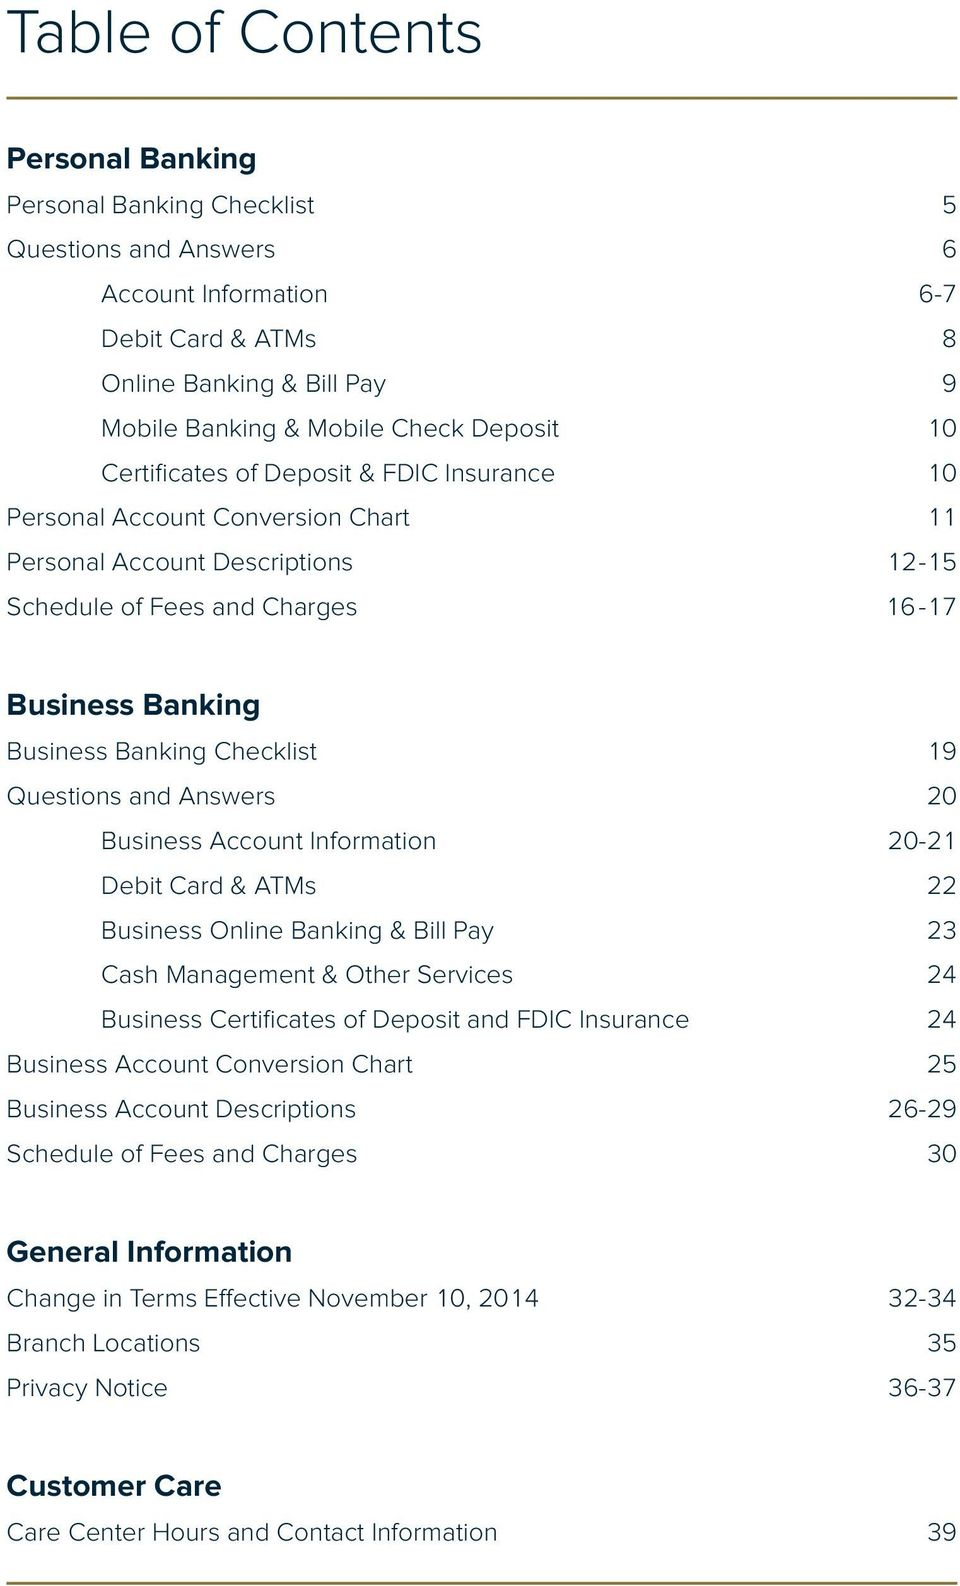 19 Questions and Answers 20 Business Account Information 20-21 Debit Card & ATMs 22 Business Online Banking & Bill Pay 23 Cash Management & Other Services 24 Business Certificates of Deposit and FDIC